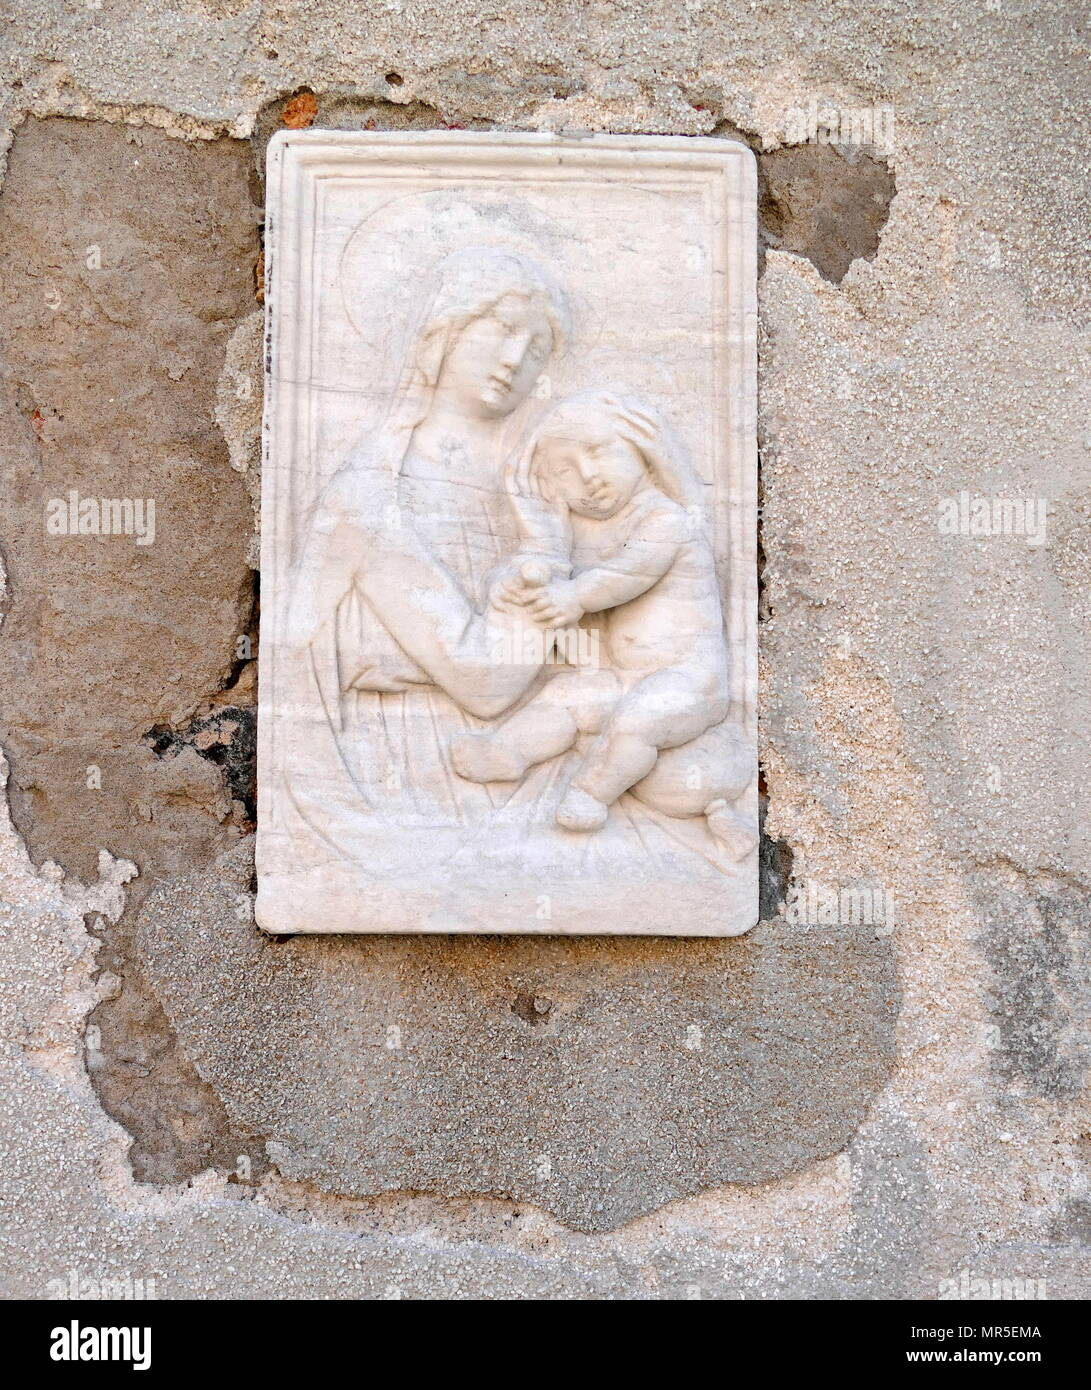 Street shrine depicting The virgin Mary with Christ. Venice, Arsenale district, Italy - Stock Image